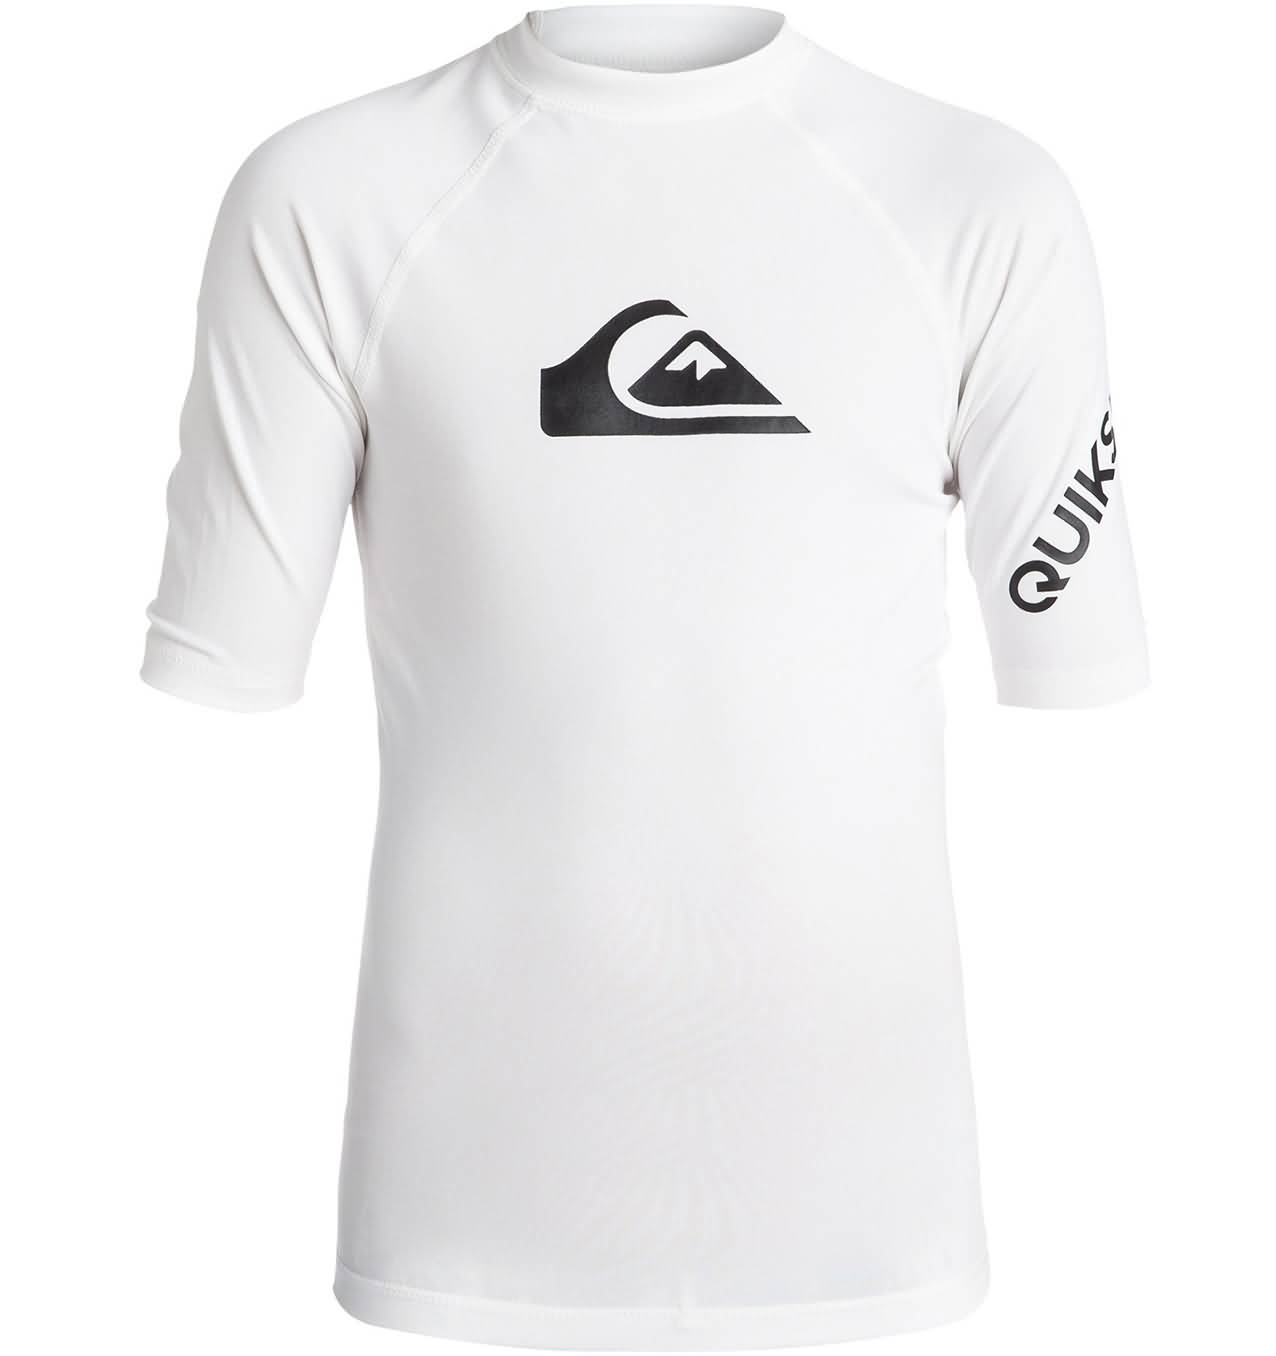 Quiksilver Surf Fall 2017 Youth Boys Beach Surfing Rashguards Preview